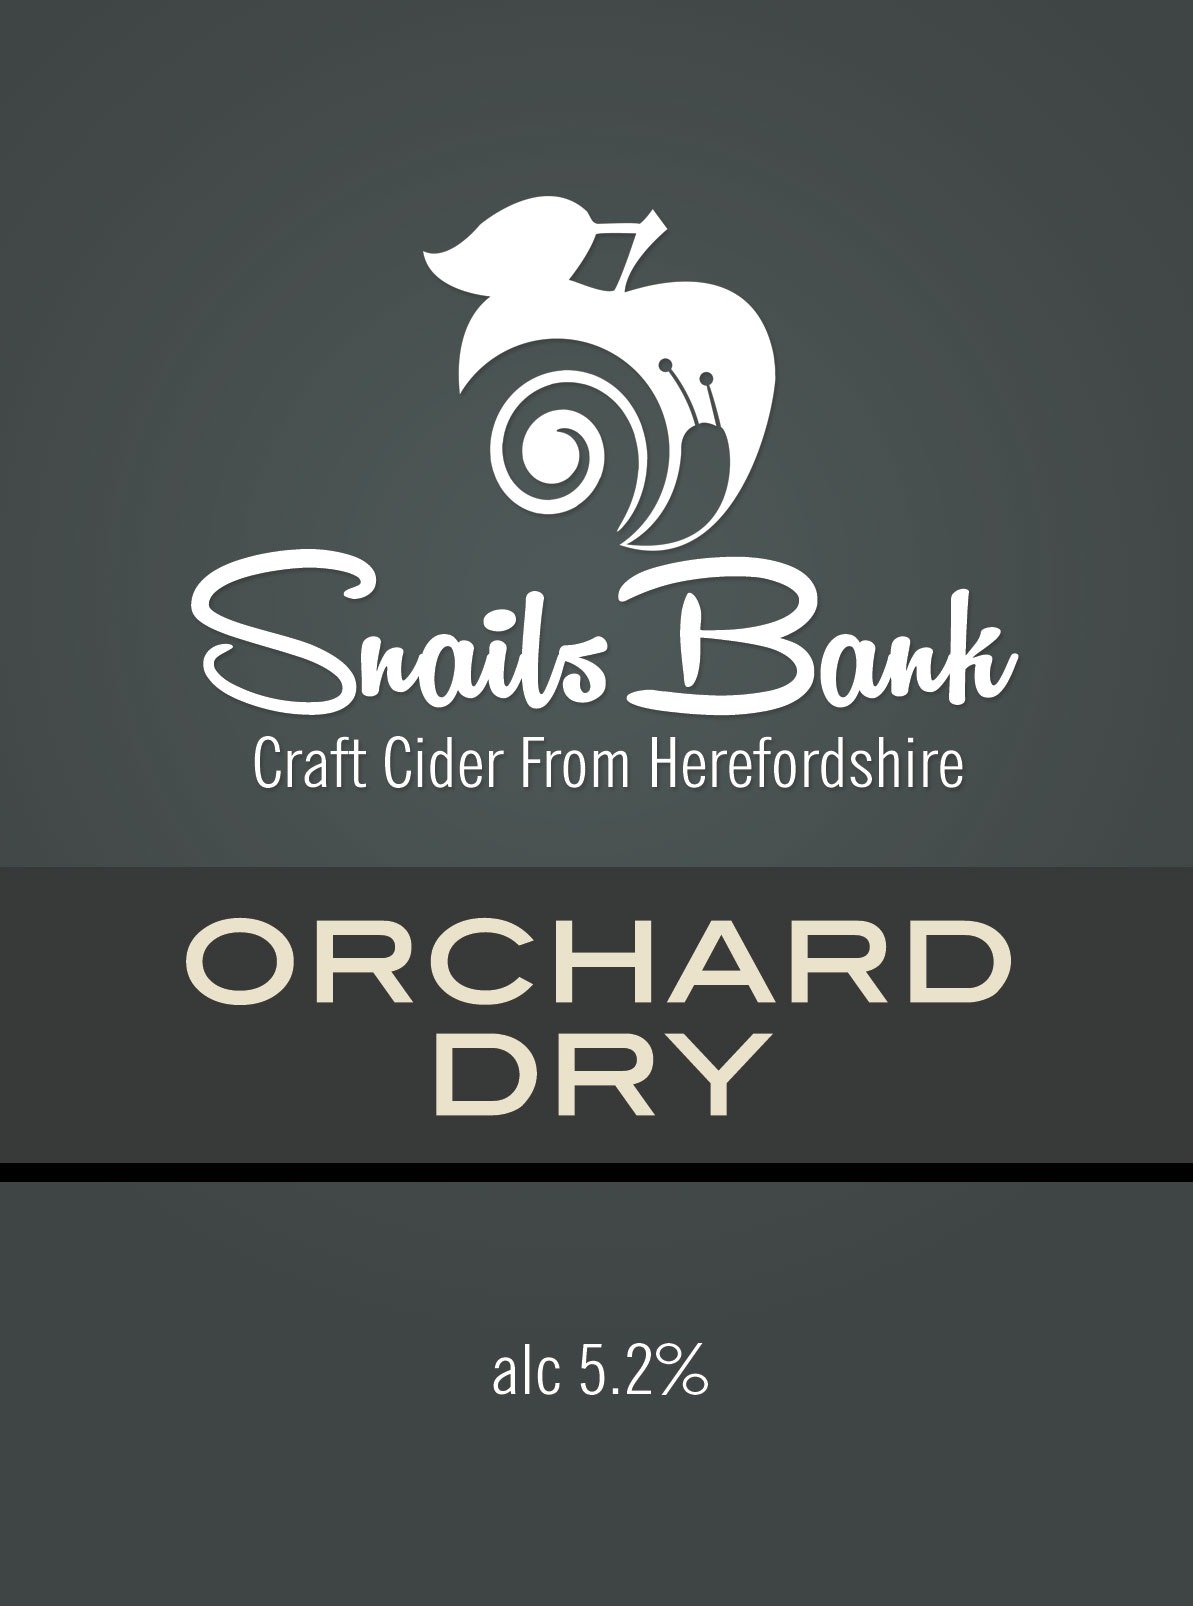 Snails Bank Orchard Dry Cider 20Ltr Bag In Box Clear 5.2%